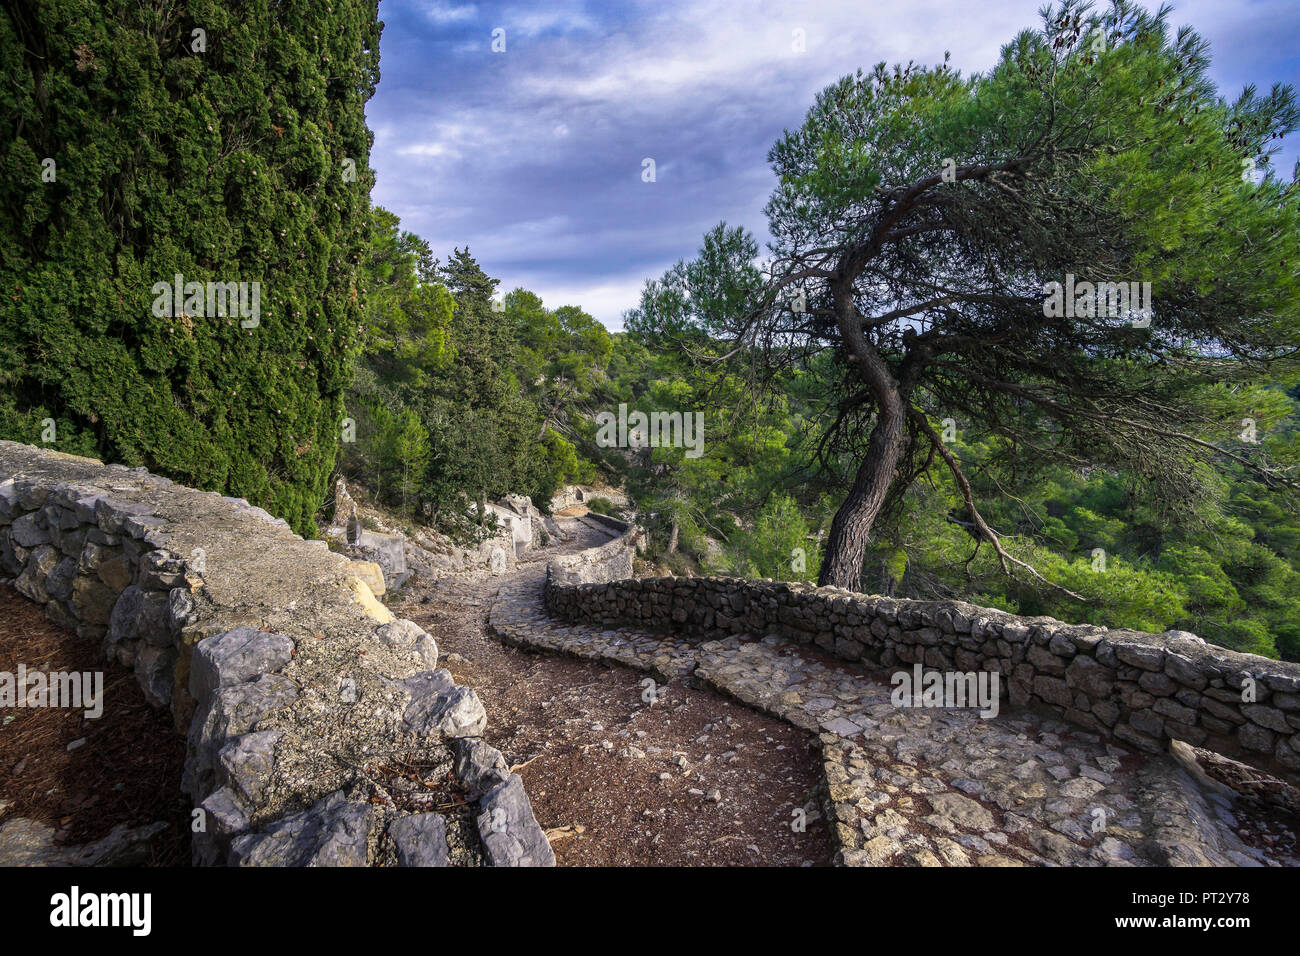 Hiking trail to Chapelle Notre Dame des Auzils near Gruissan surrounded by cenotaphs - Stock Image